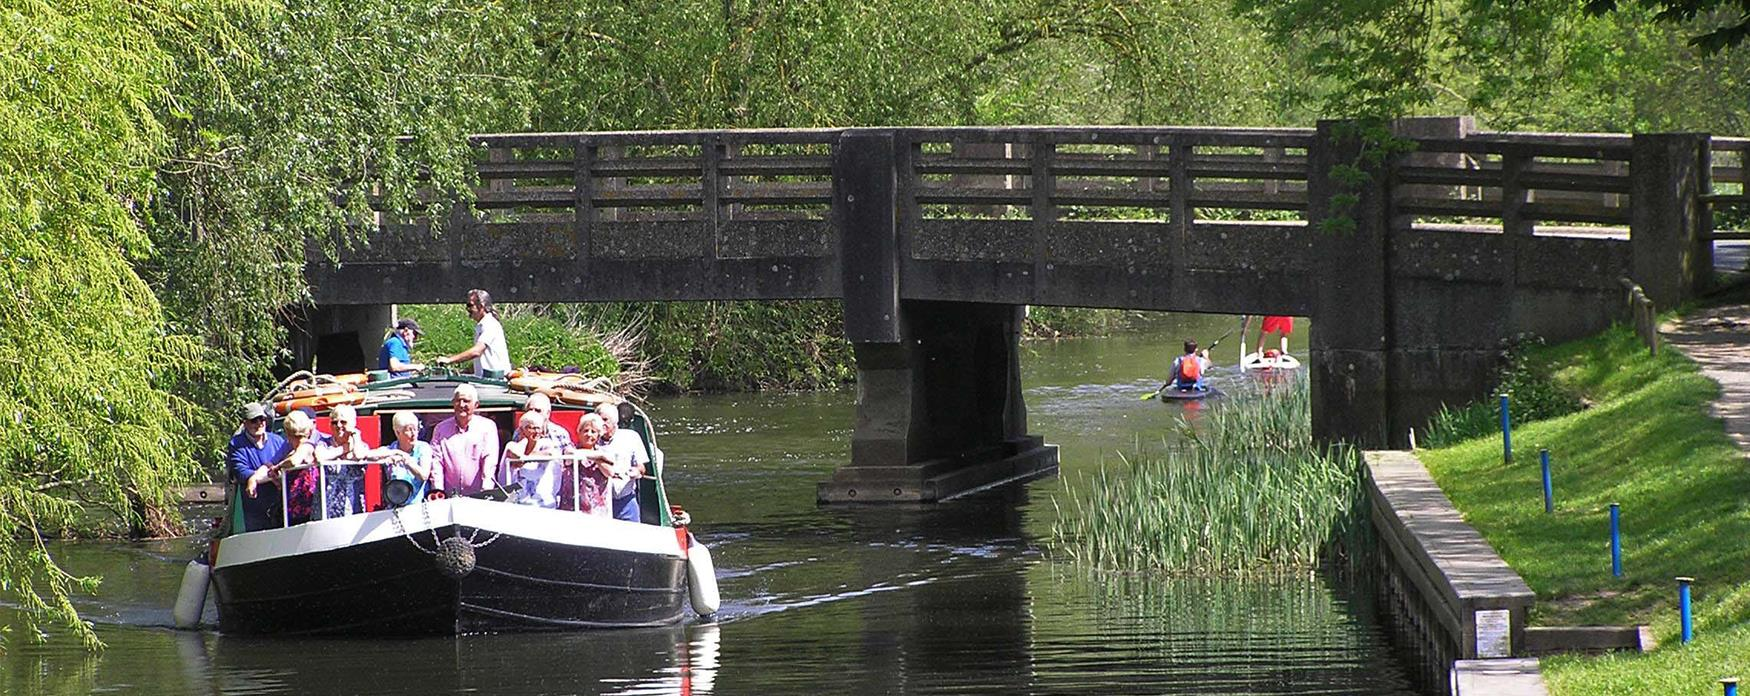 A boat tour on the Chelmer and Blackwater Navigation